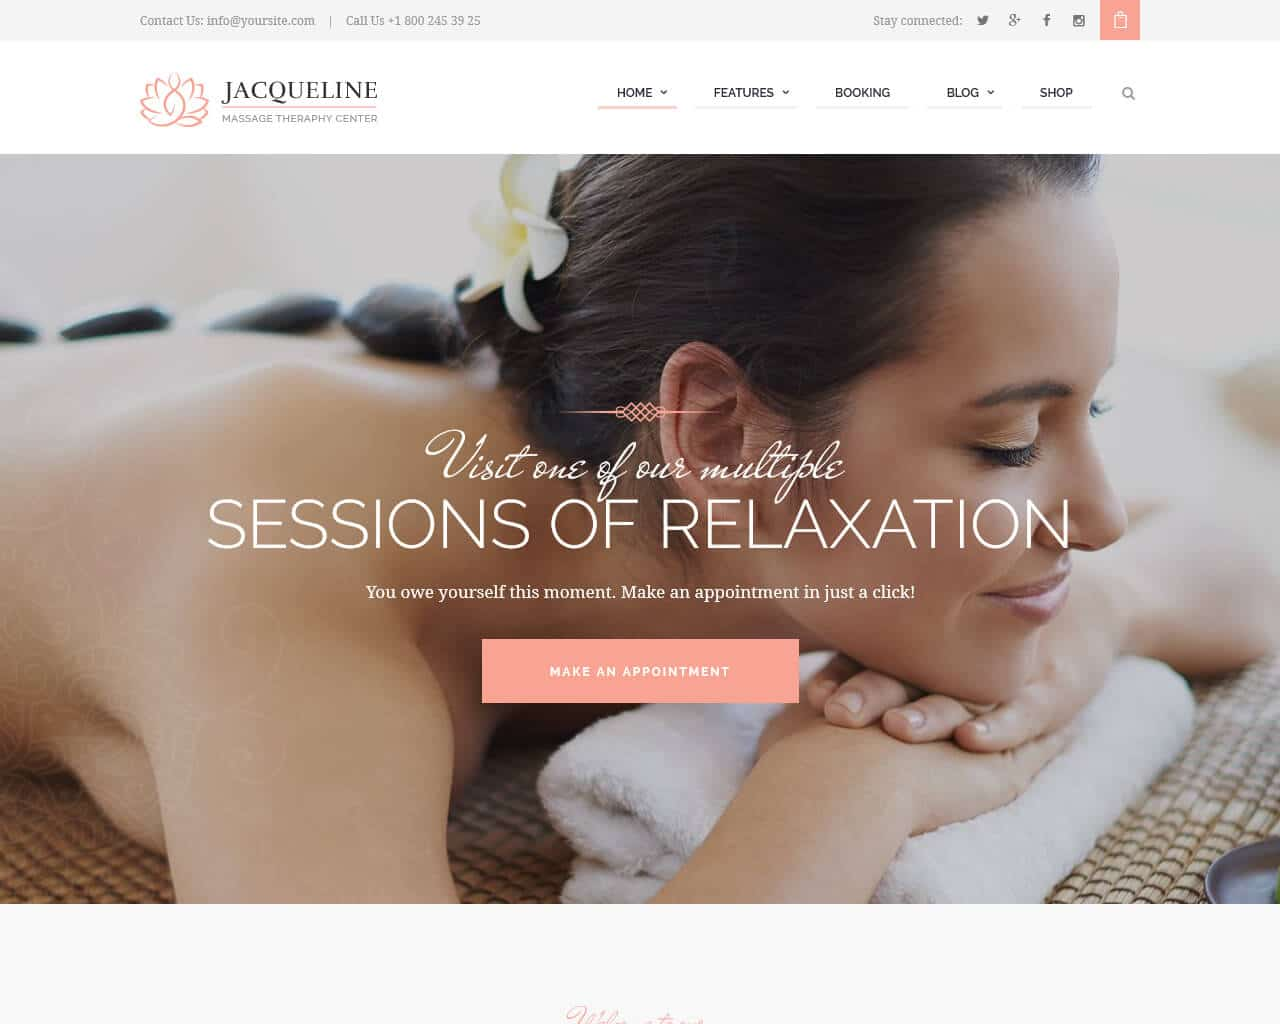 Jacqueline Website Template